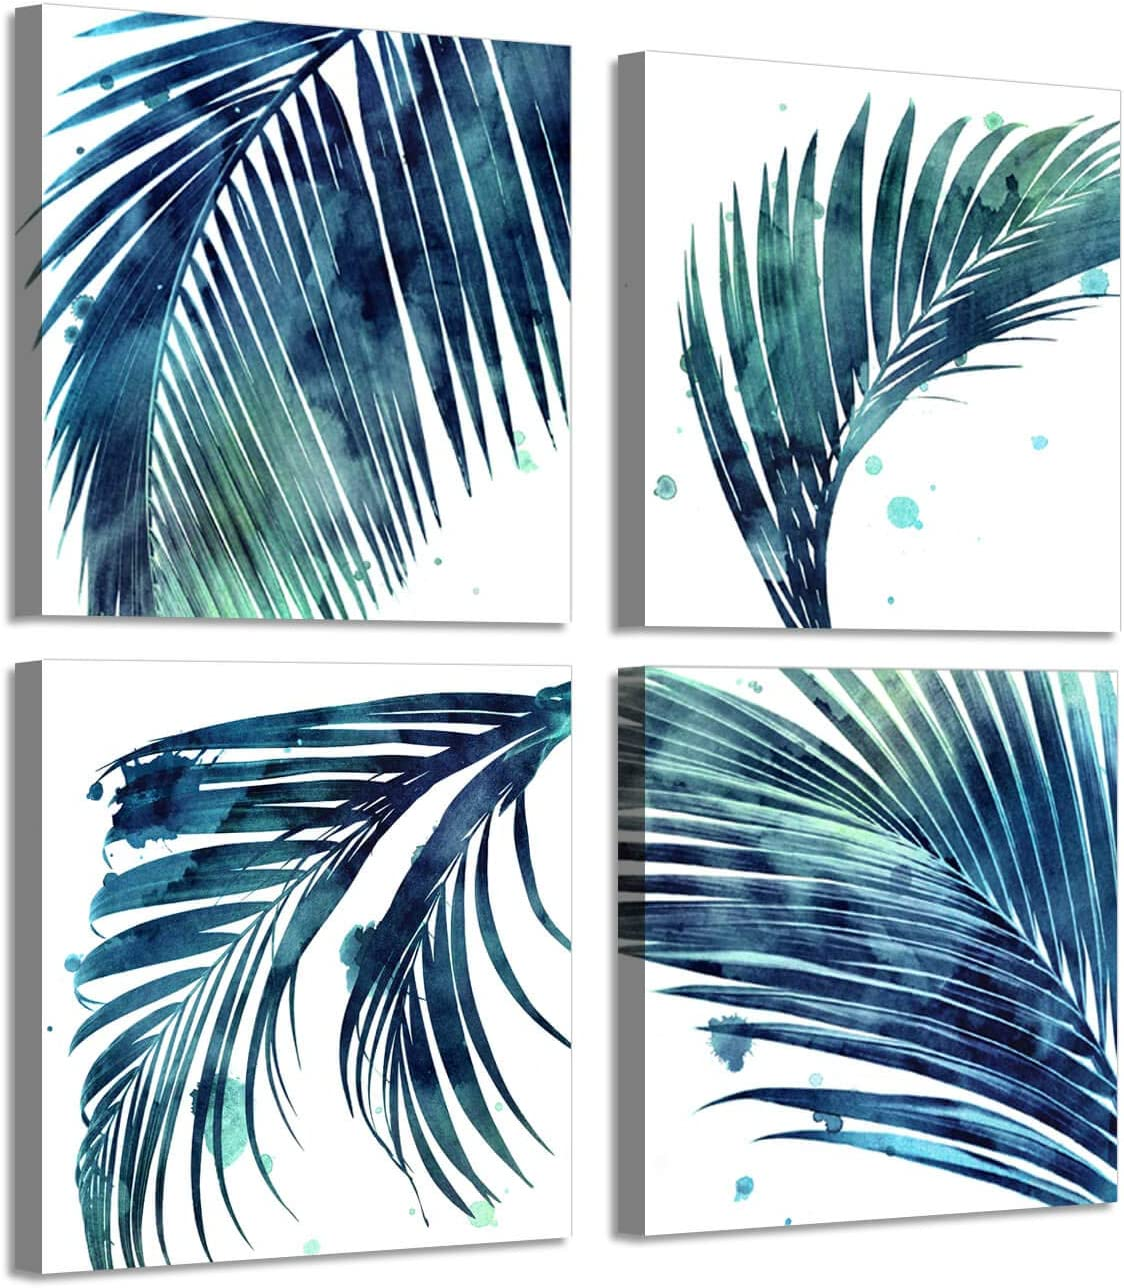 Nature Botanical Leaf Artwork Paintings: Paradise Palm Graphic Print on Canvas, 4 Piece Wall Art for Home